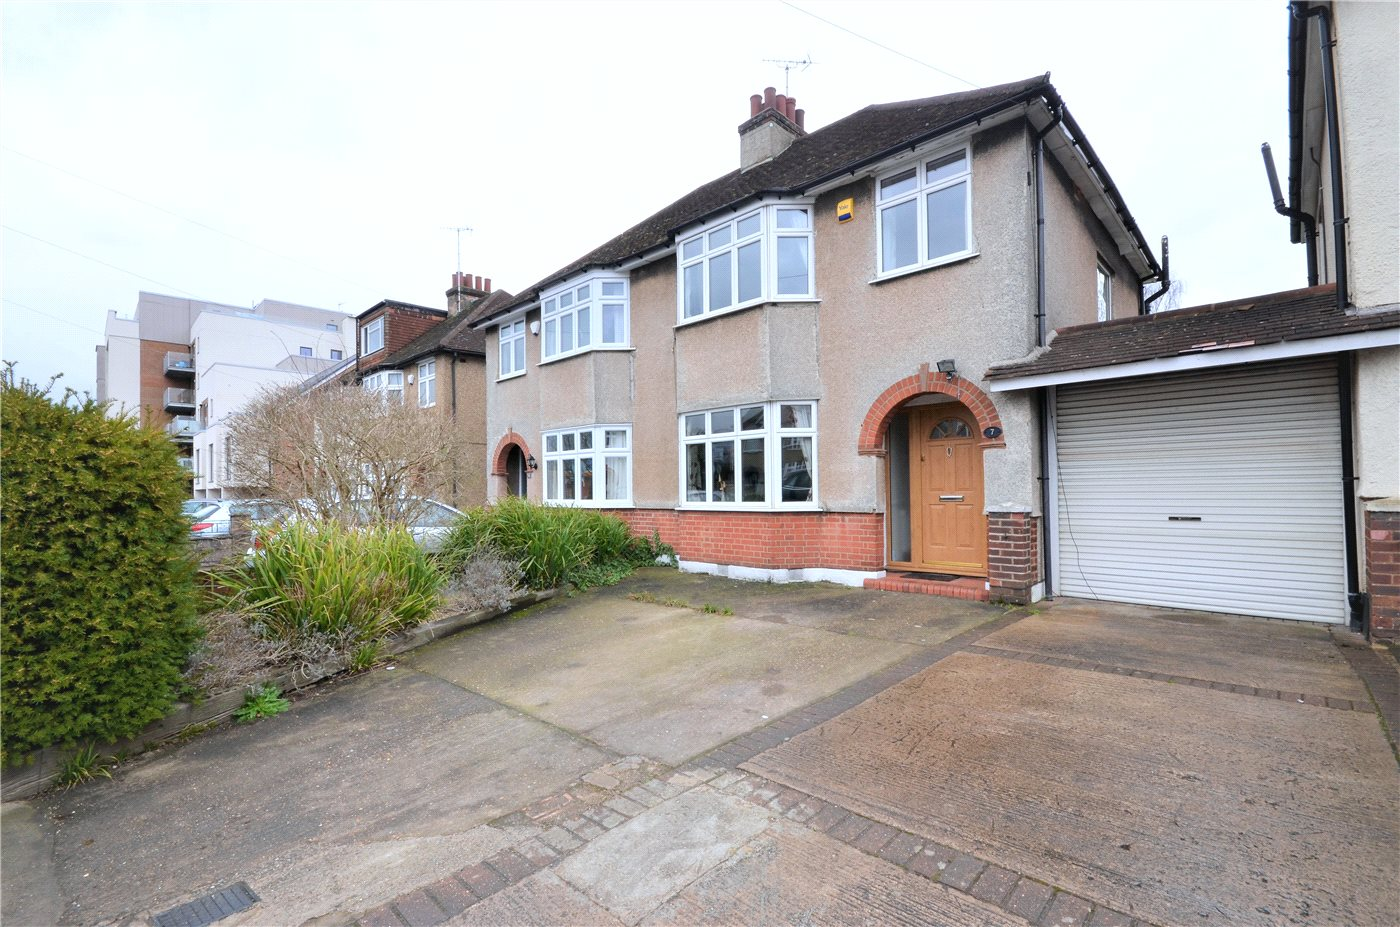 3 Bedrooms Semi Detached House for sale in Bullhead Road, Borehamwood, Hertfordshire, WD6